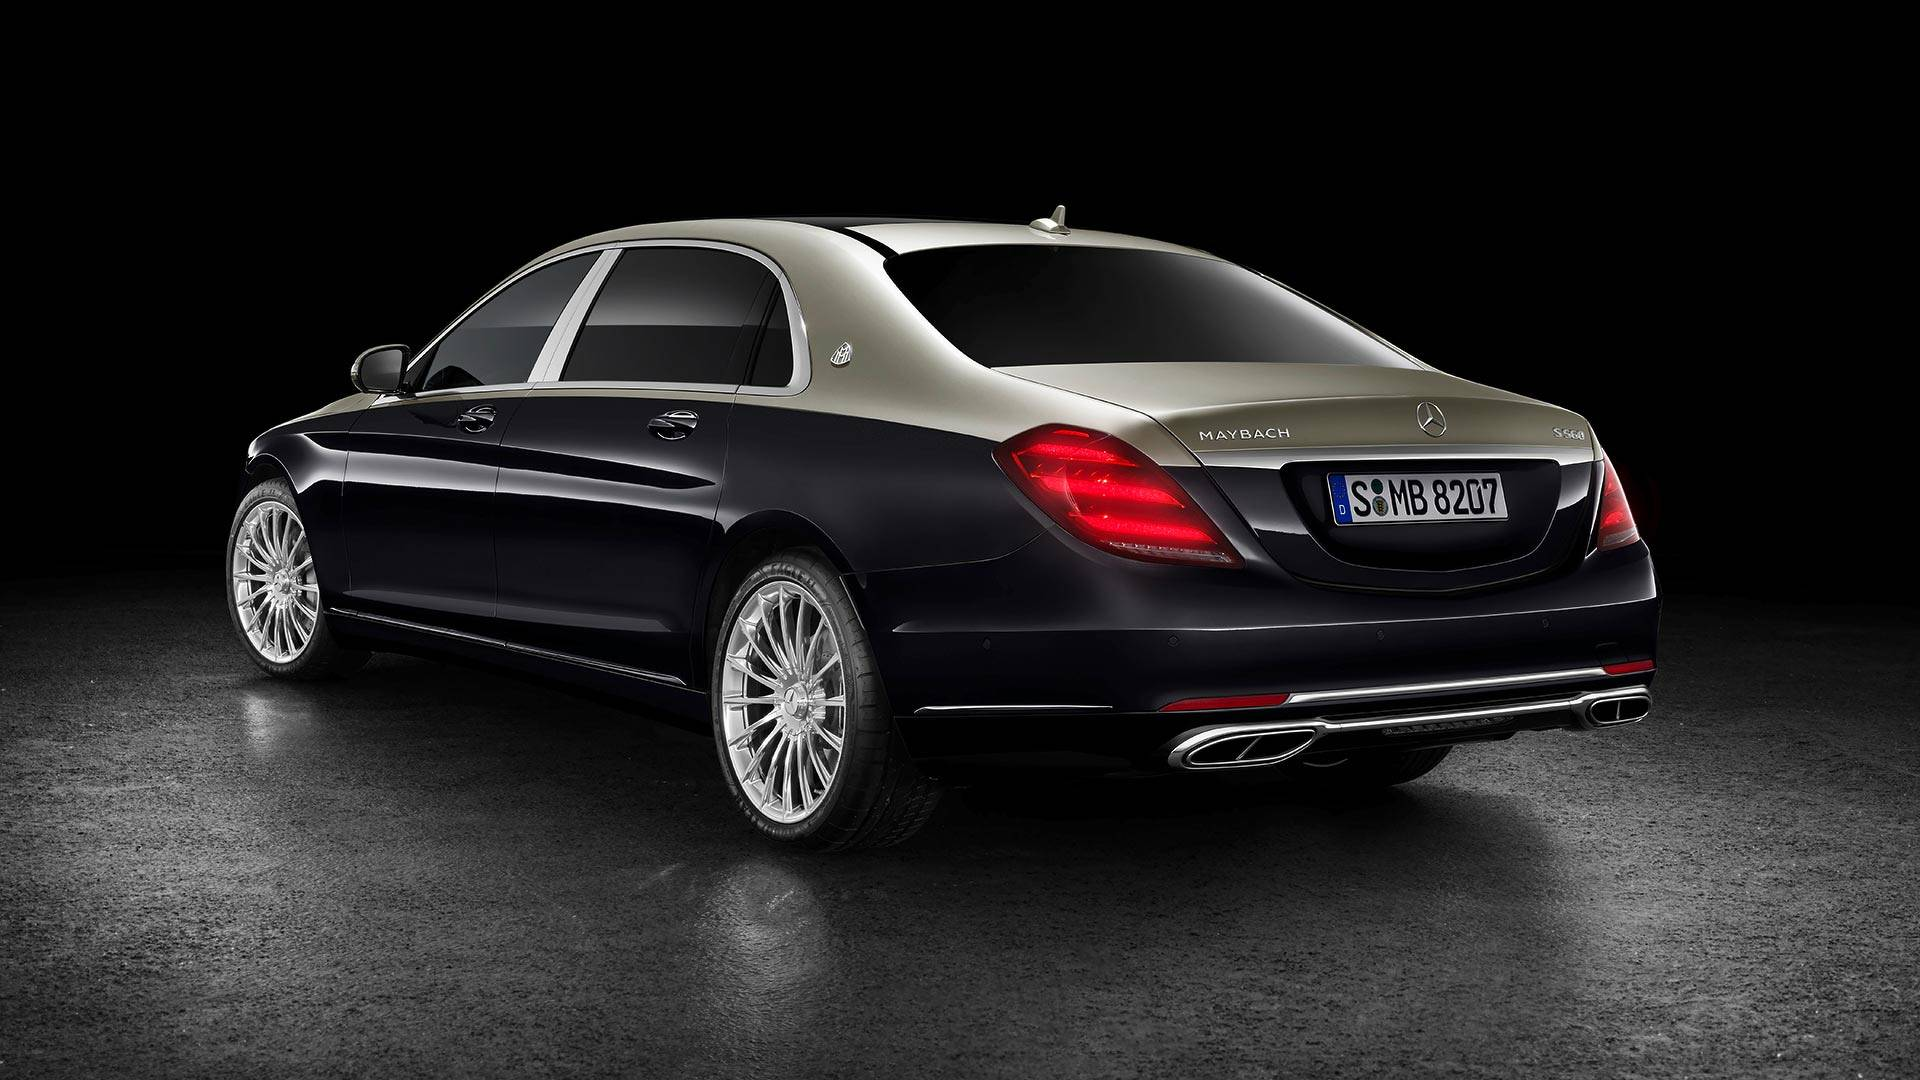 2019-mercedes-maybach-s-class-sedan.jpg